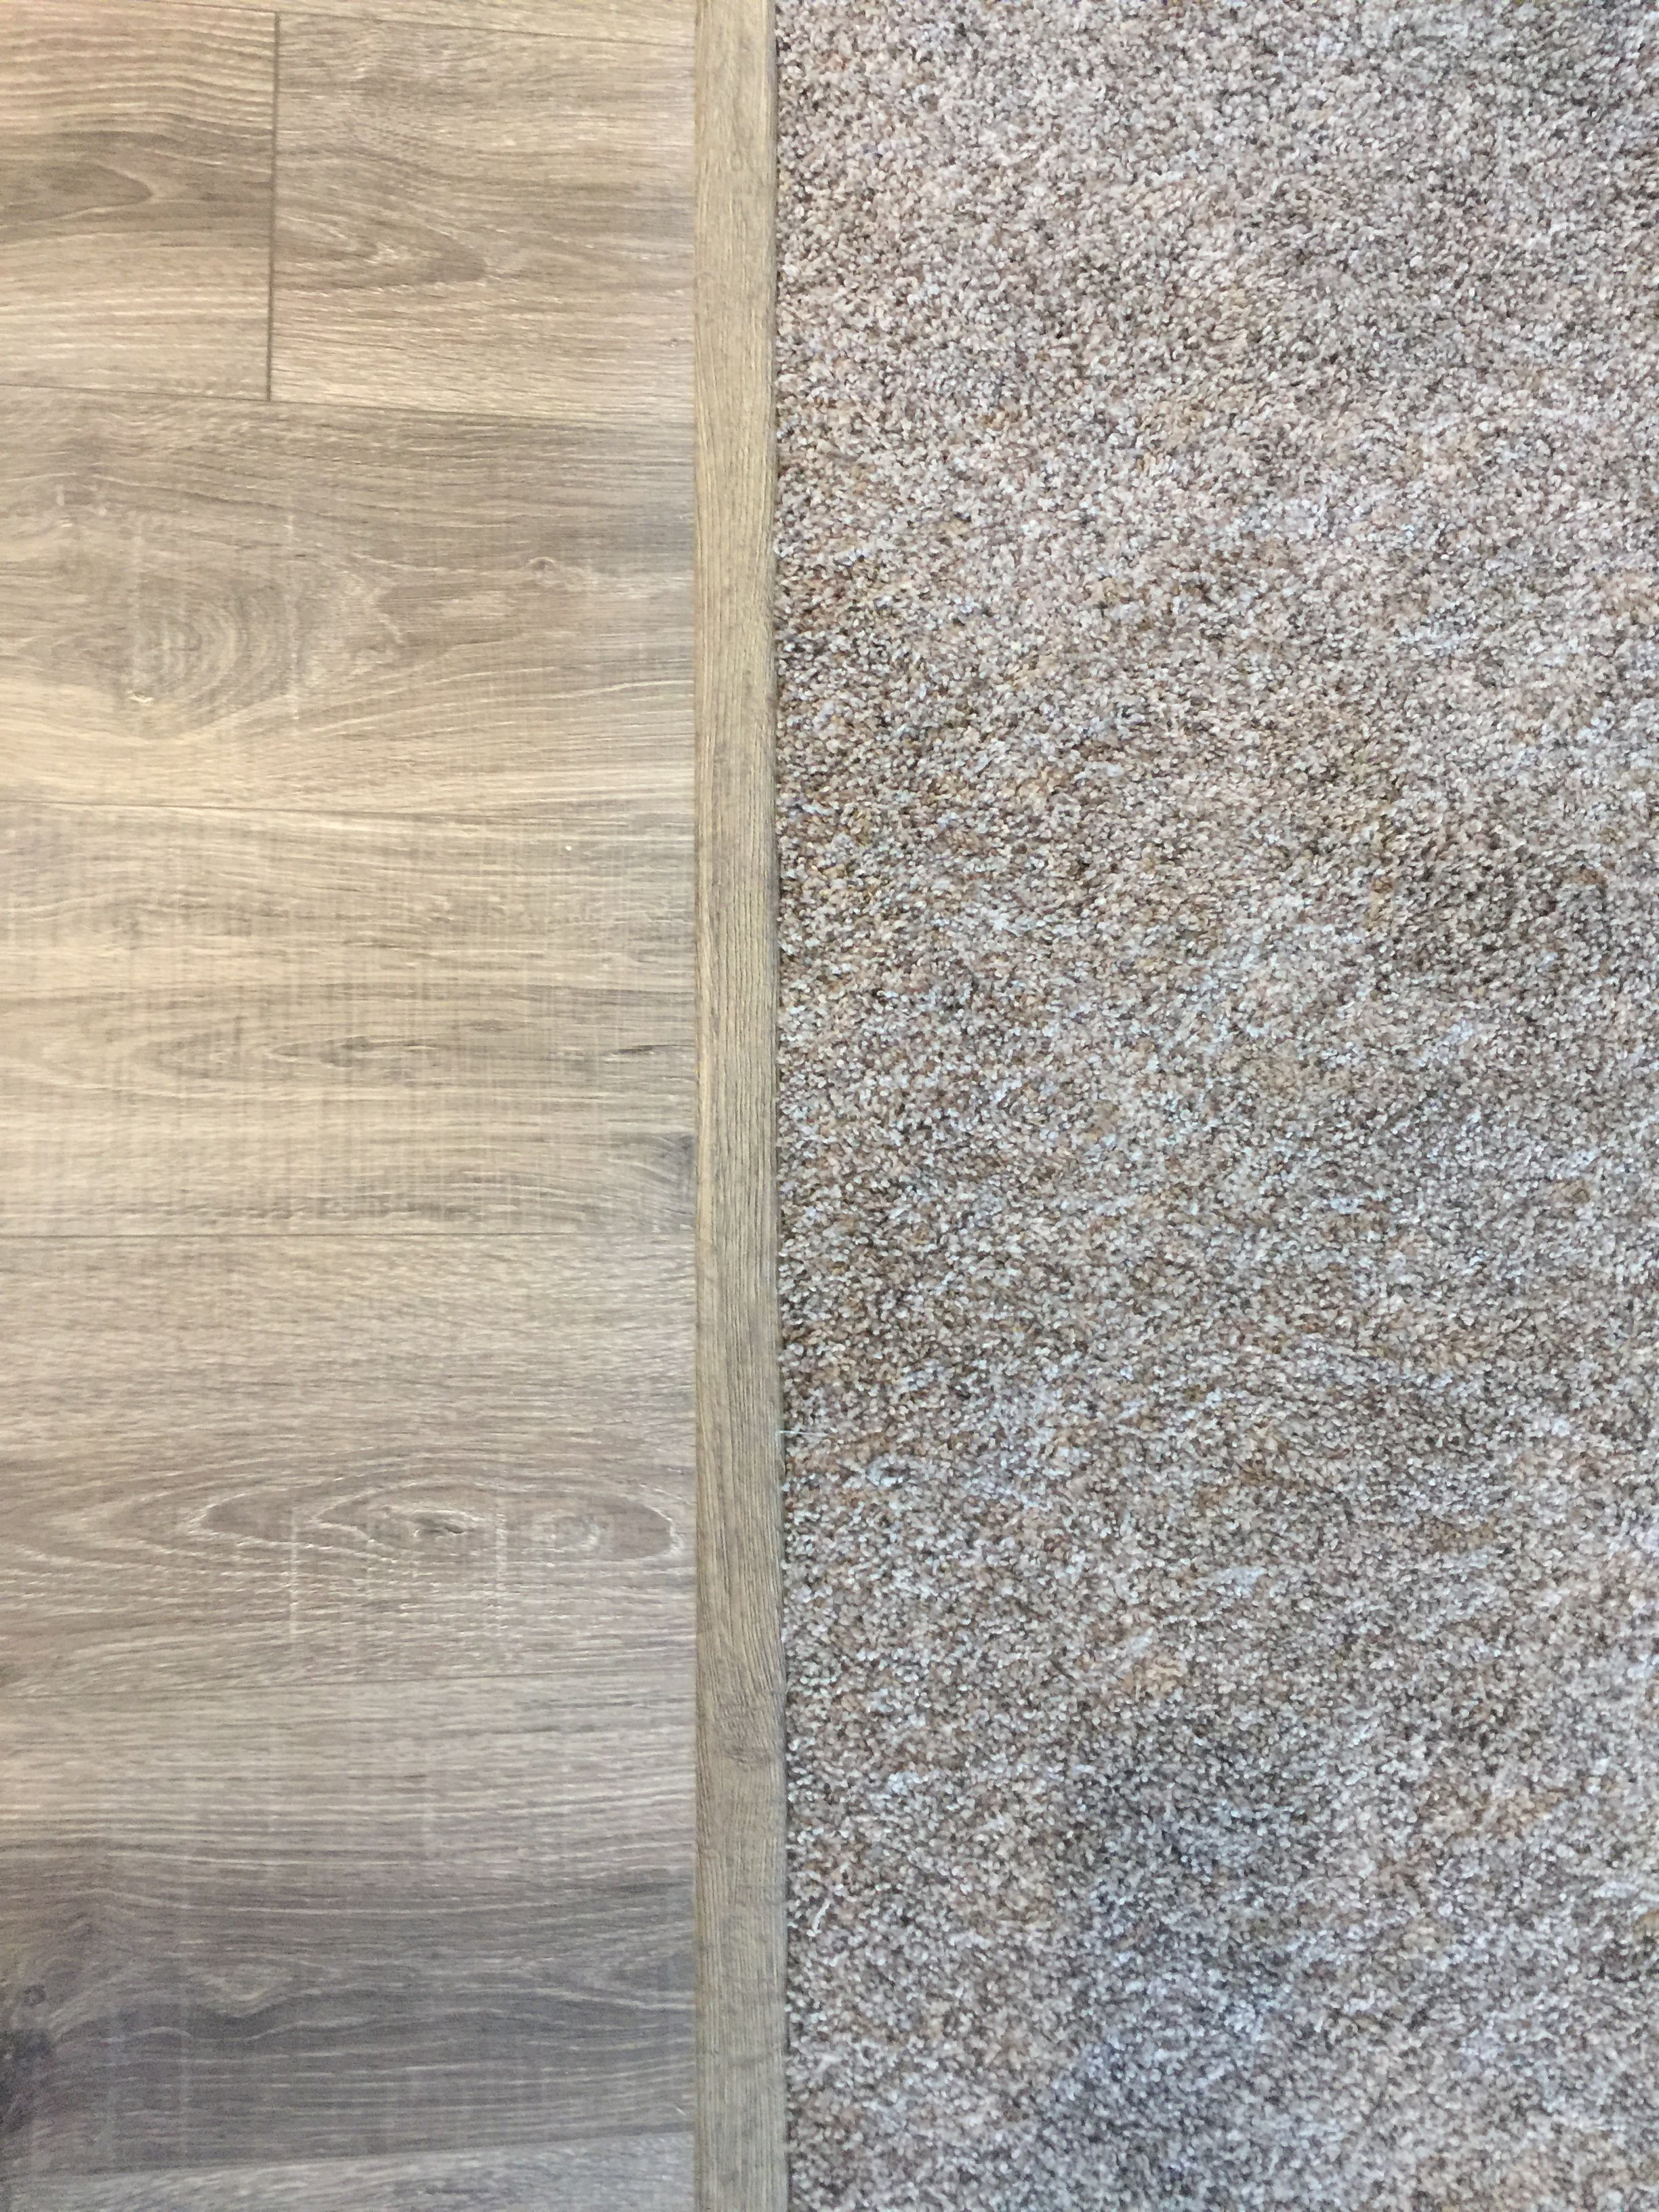 LVP TO CARPET TRANSITIONAL STRIP MI Homes Luxe Plank Vinyl